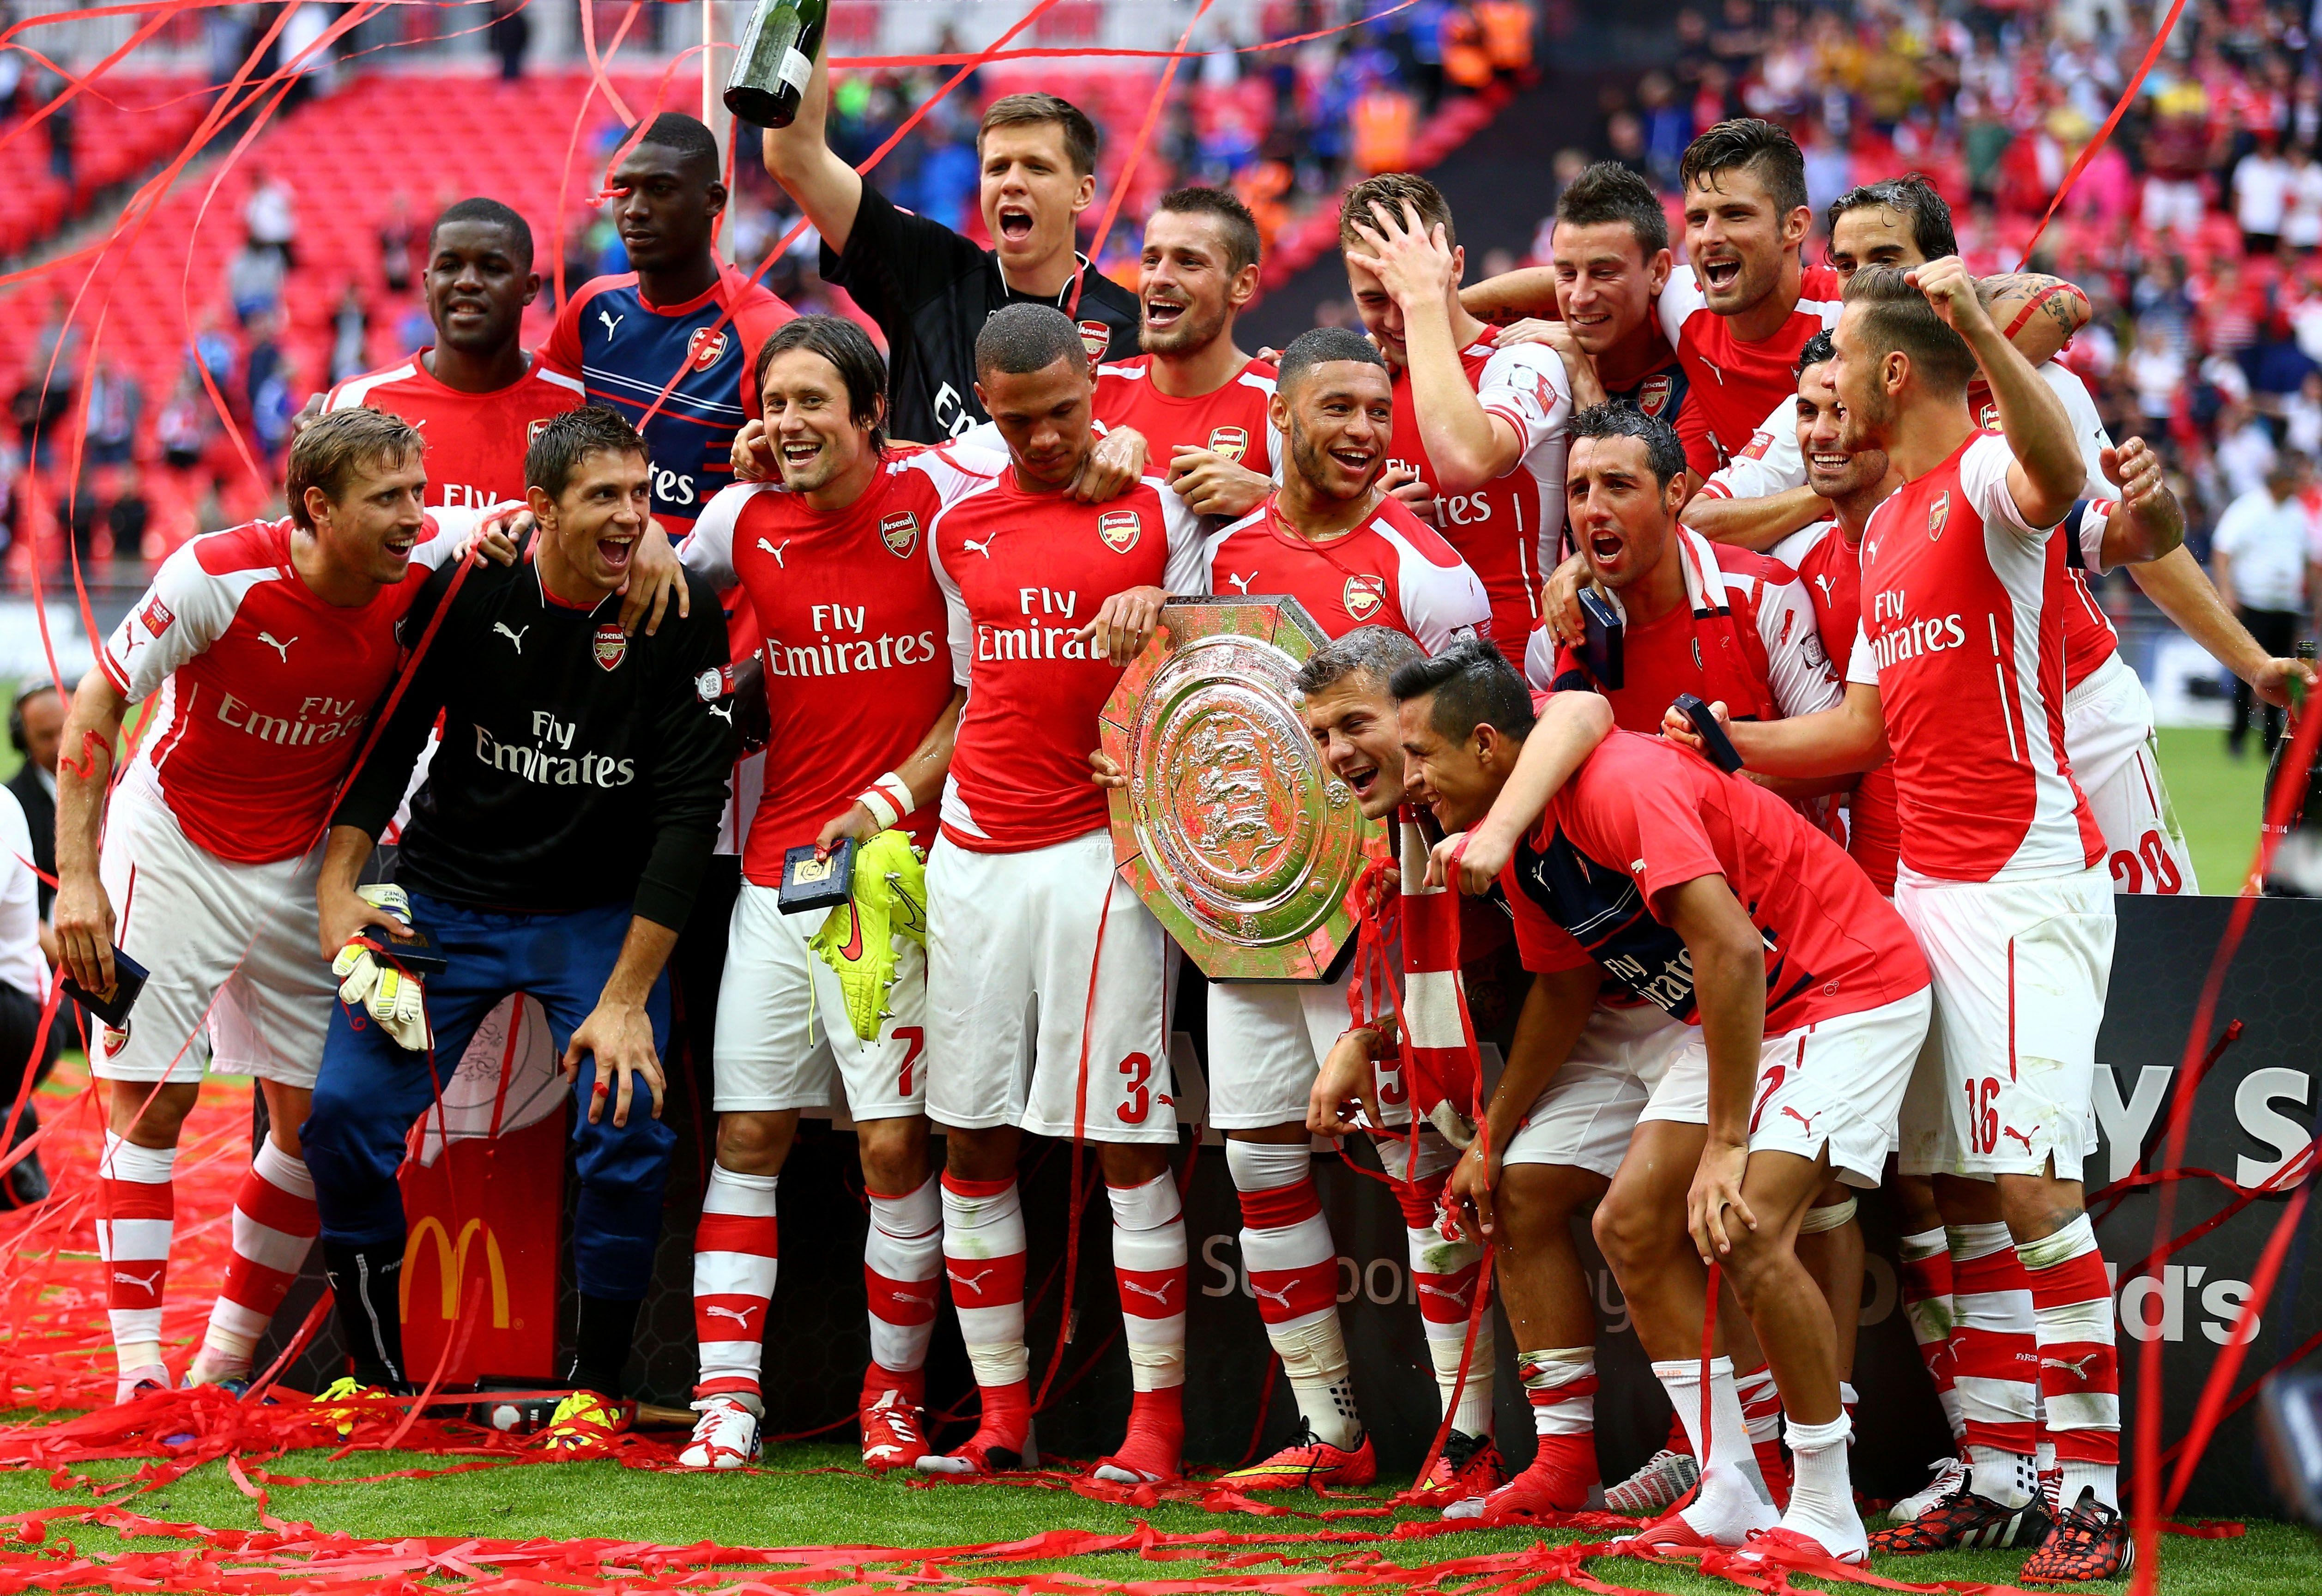 Arsenal Community Shield 2017 Wallpapers